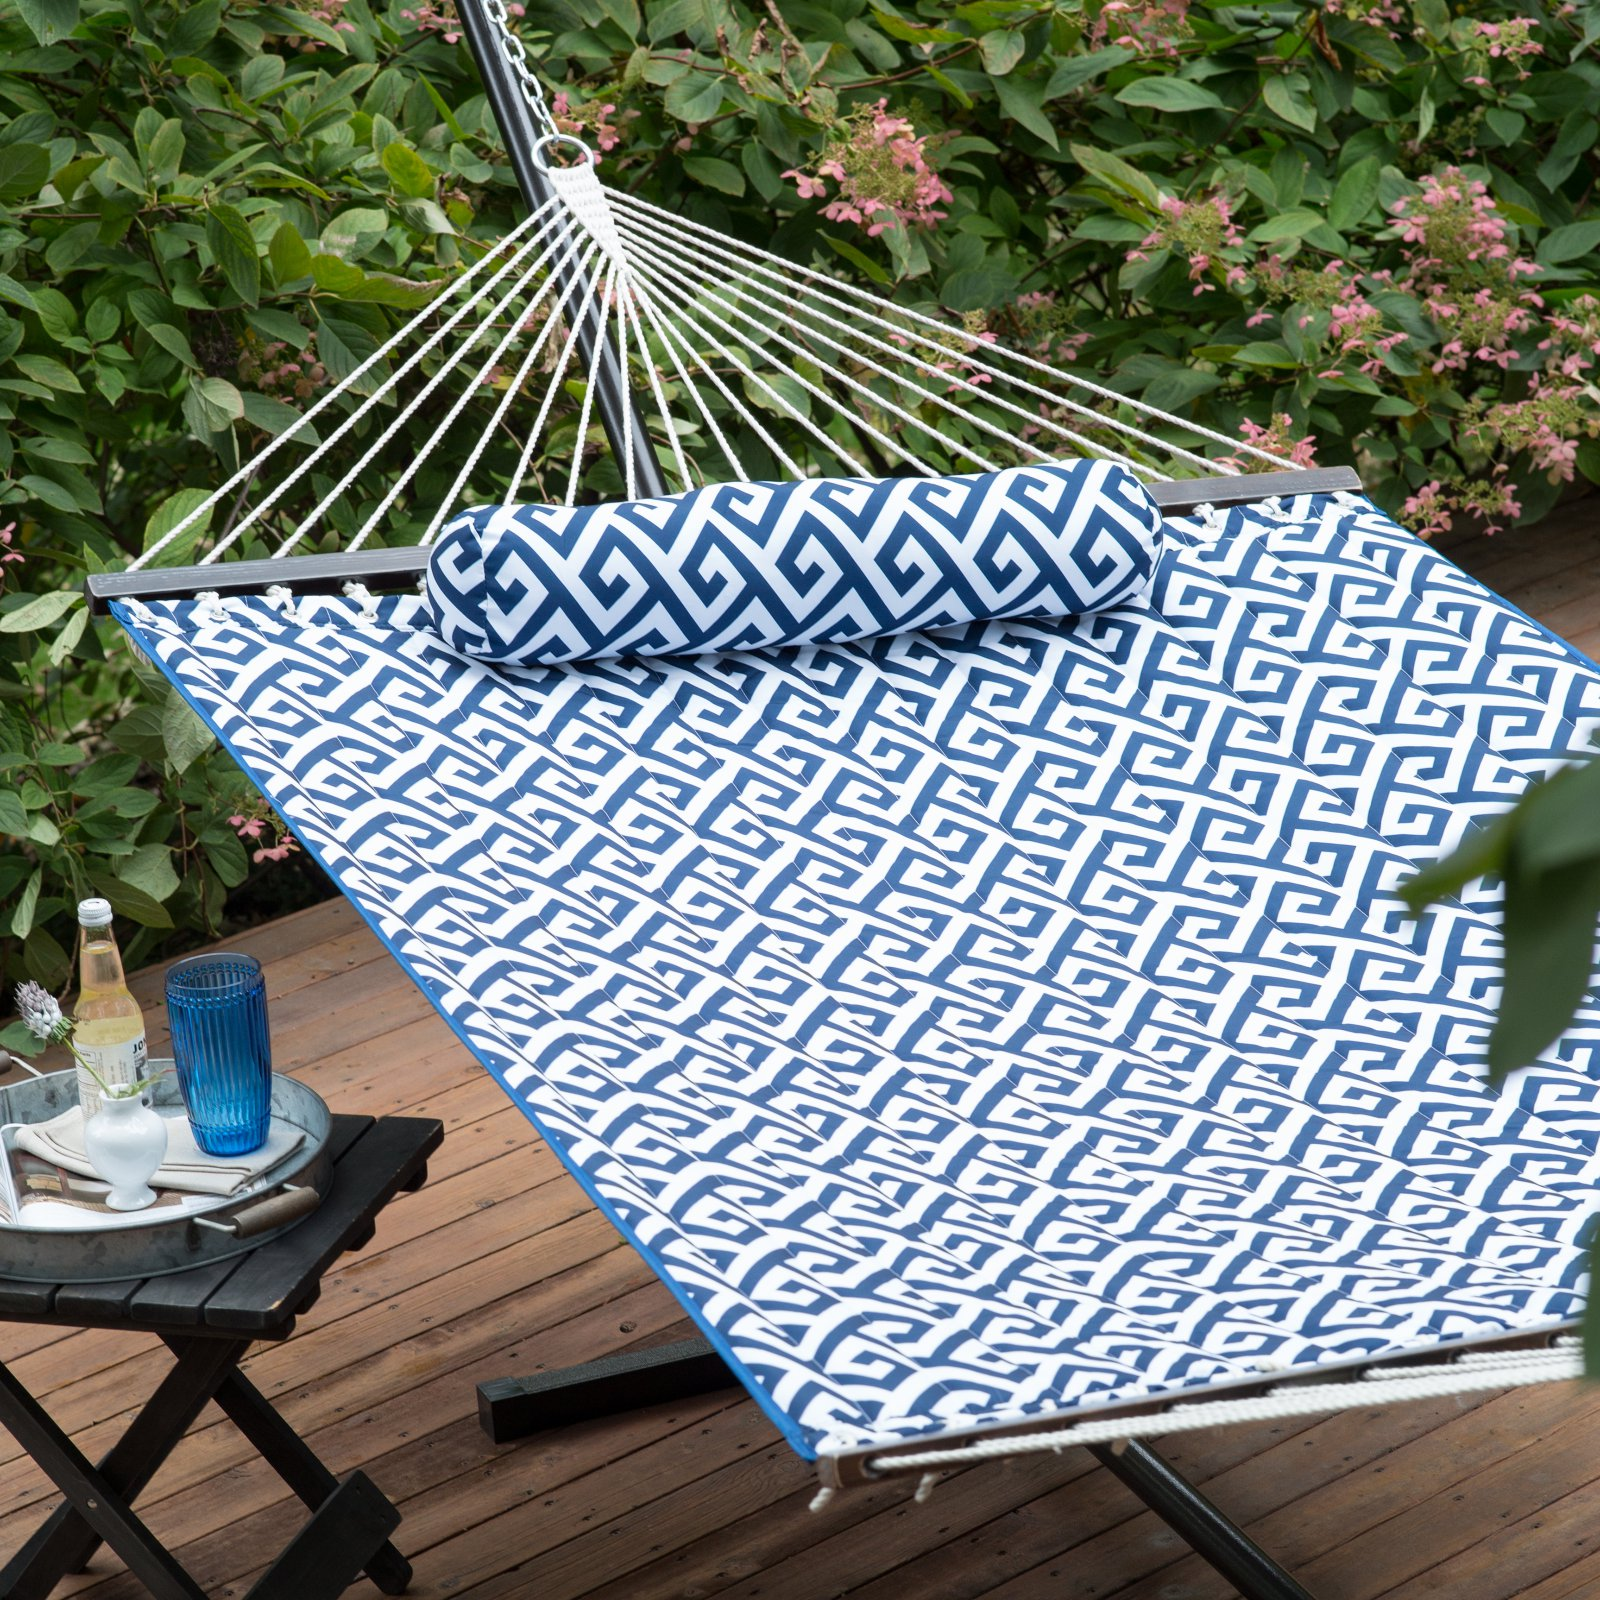 Island Bay 11-ft. Greek Key Quilted Hammock with Metal Stand Deluxe Set by Algoma Net Co